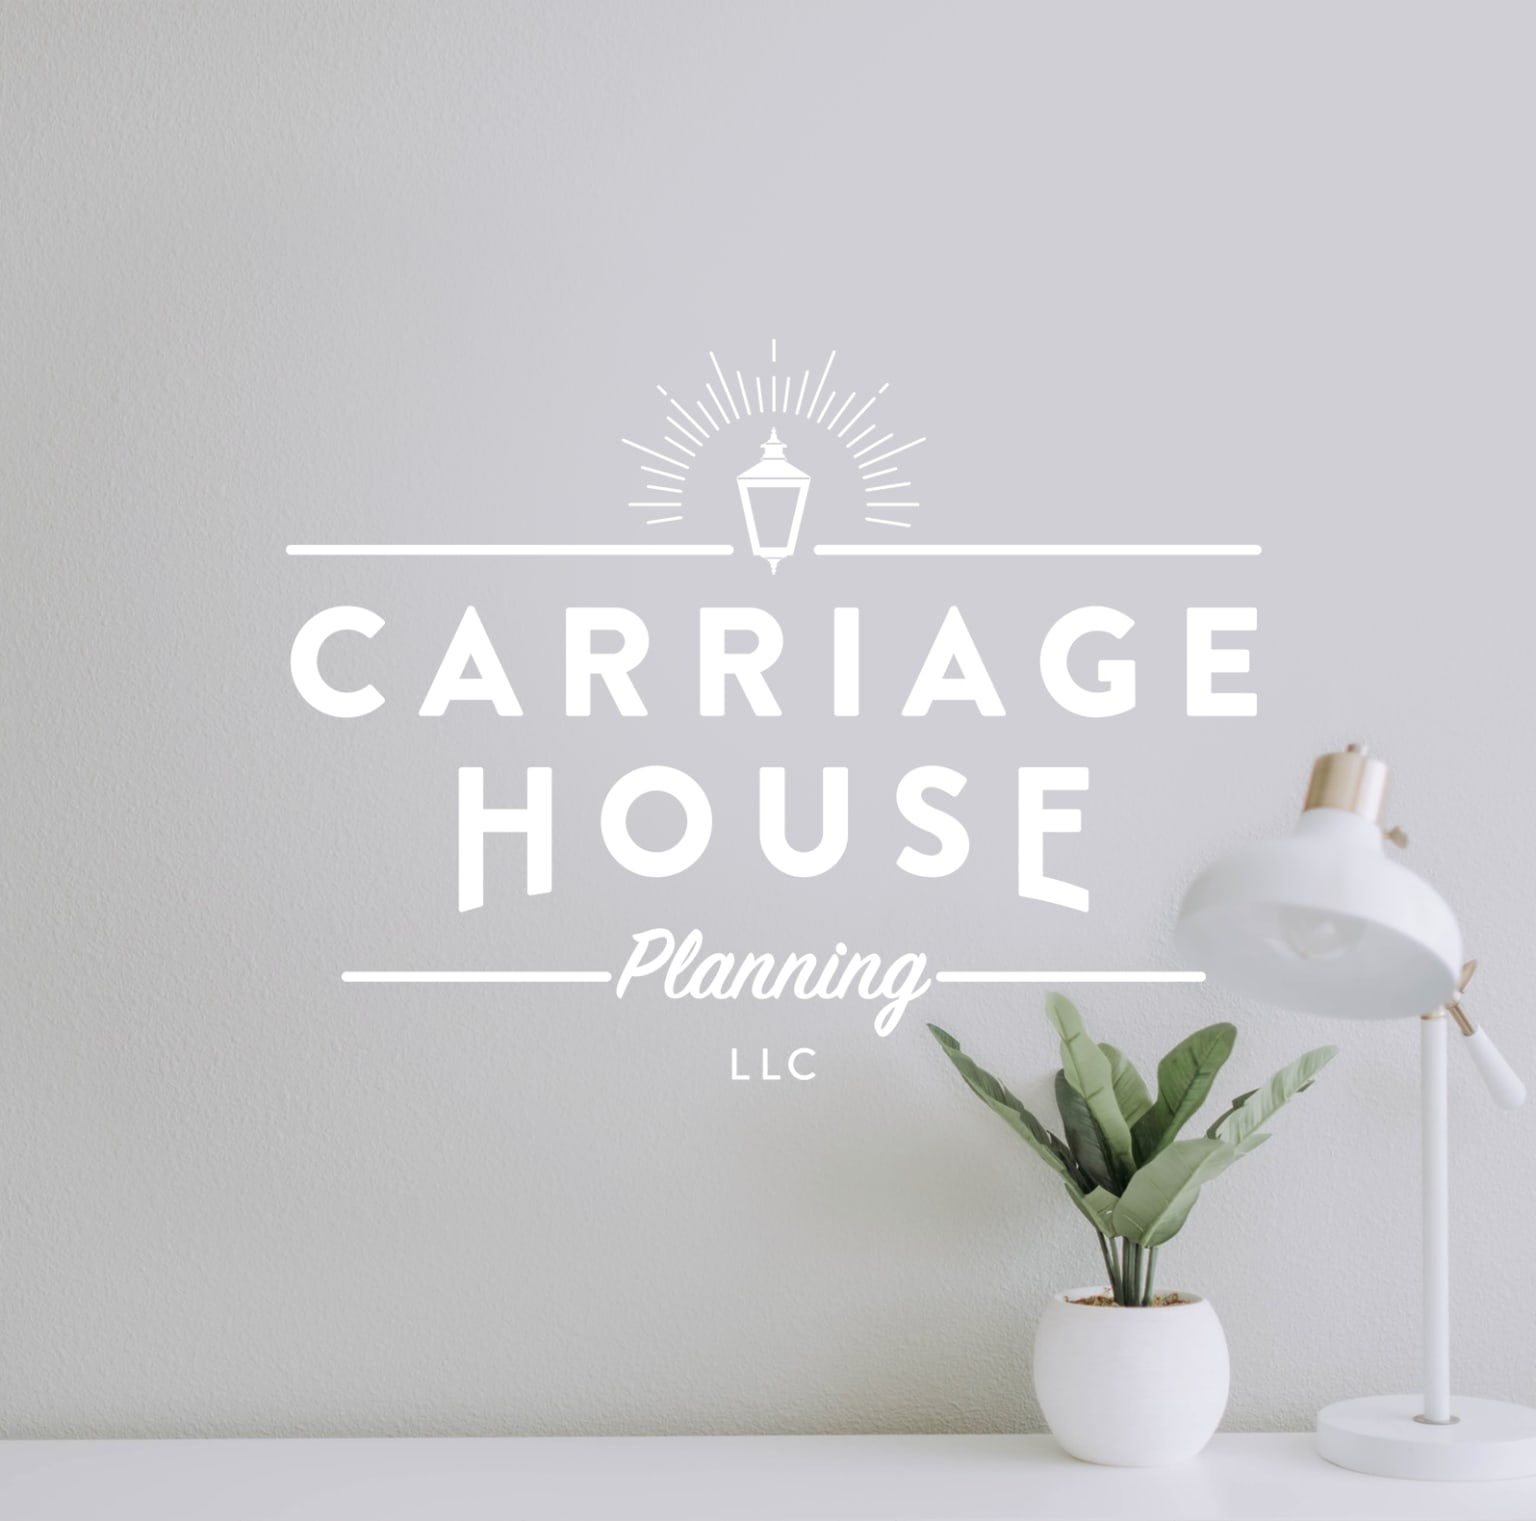 Carriage House Planning